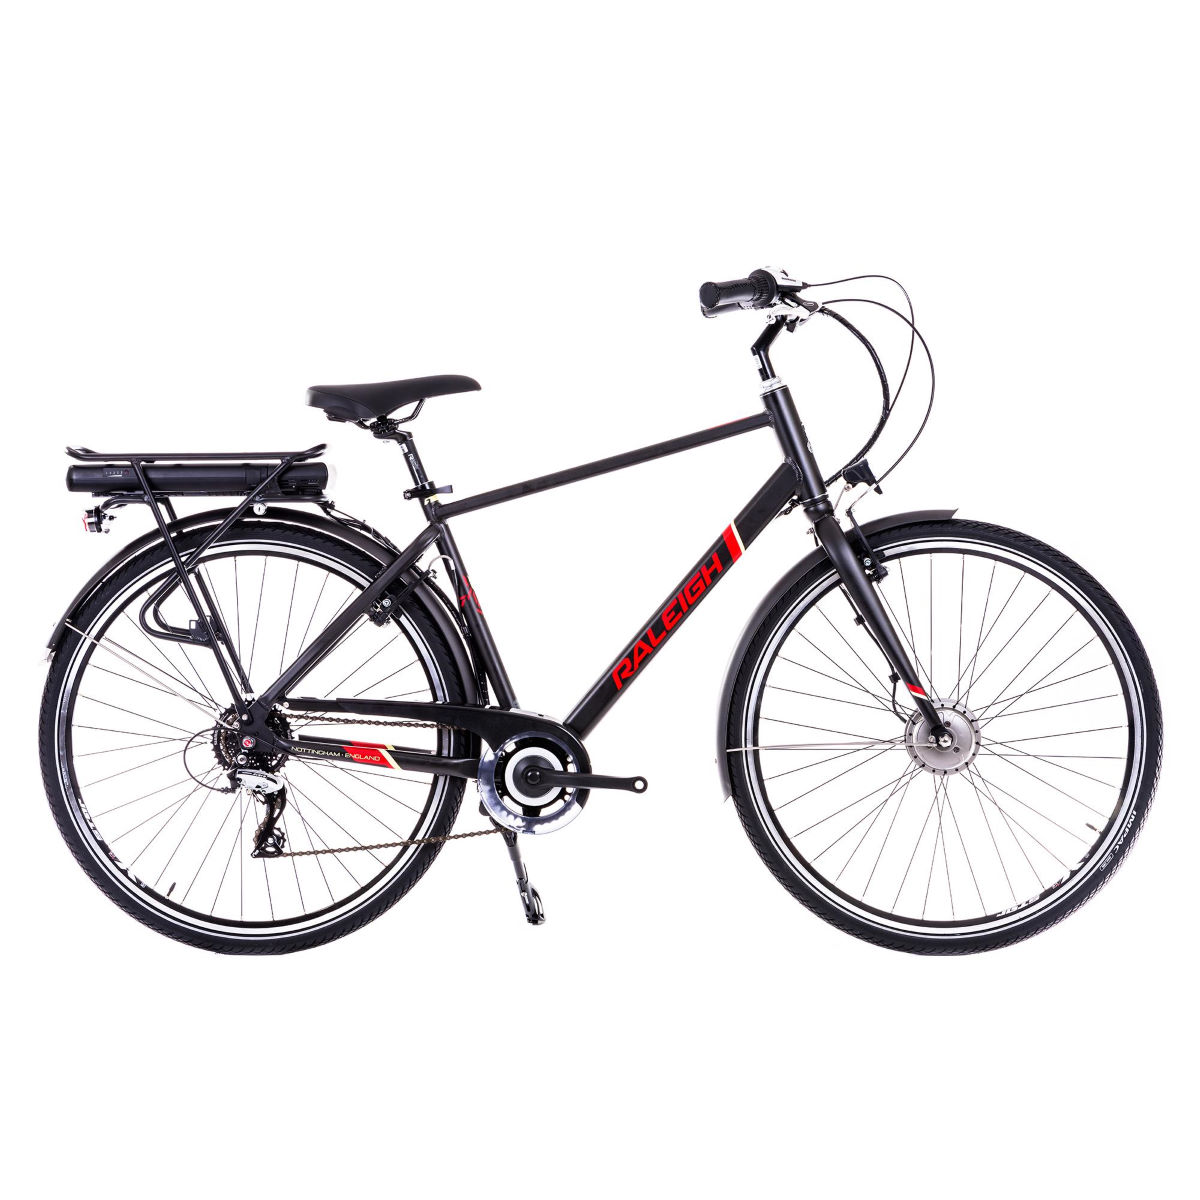 raleigh array crossbar e motion electric bike reviews. Black Bedroom Furniture Sets. Home Design Ideas